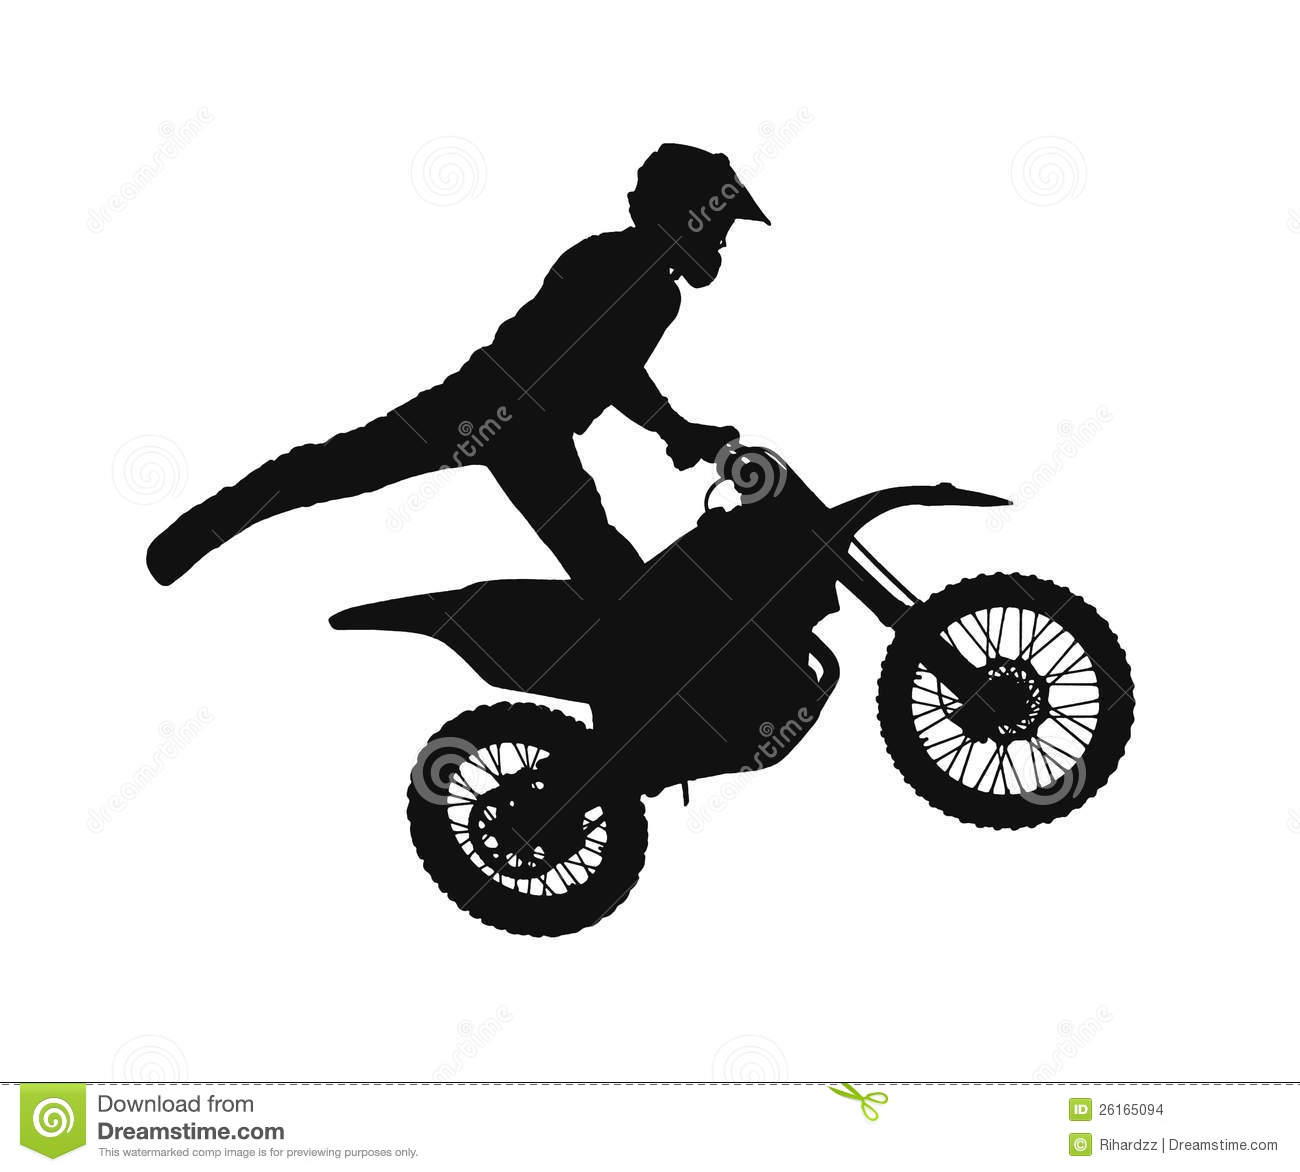 Silhouette Of Motocross Rider Stock Images - Image: 26165094